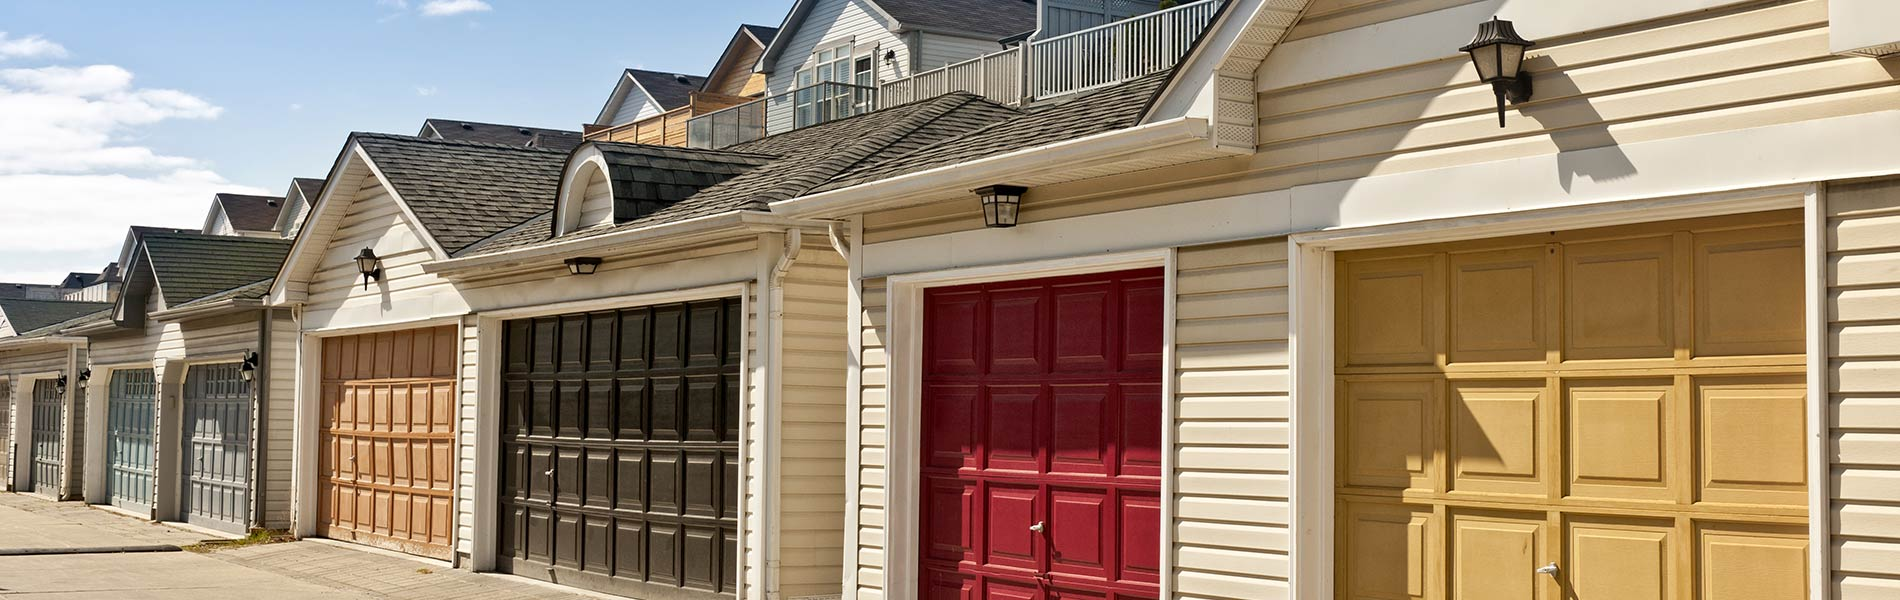 Interstate Garage Door Service, Burbank, CA 818-659-5348